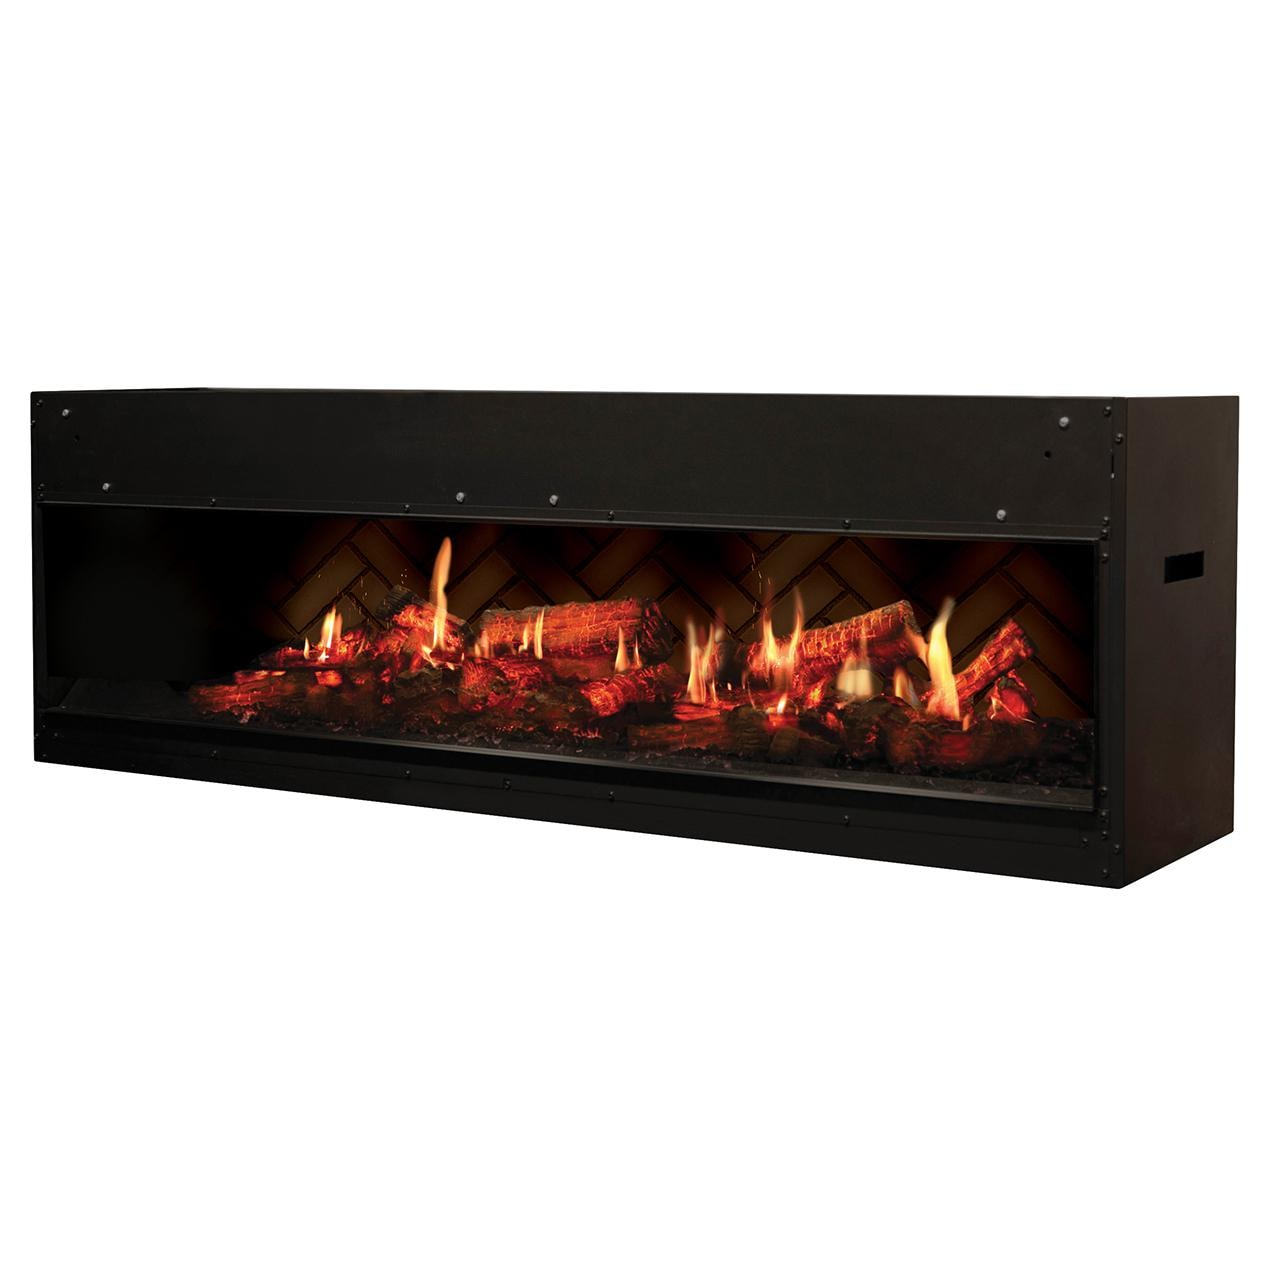 Direct Vent Gas Fireplace Ratings The 5 Most Realistic Electric Fireplaces Gas Log Guys